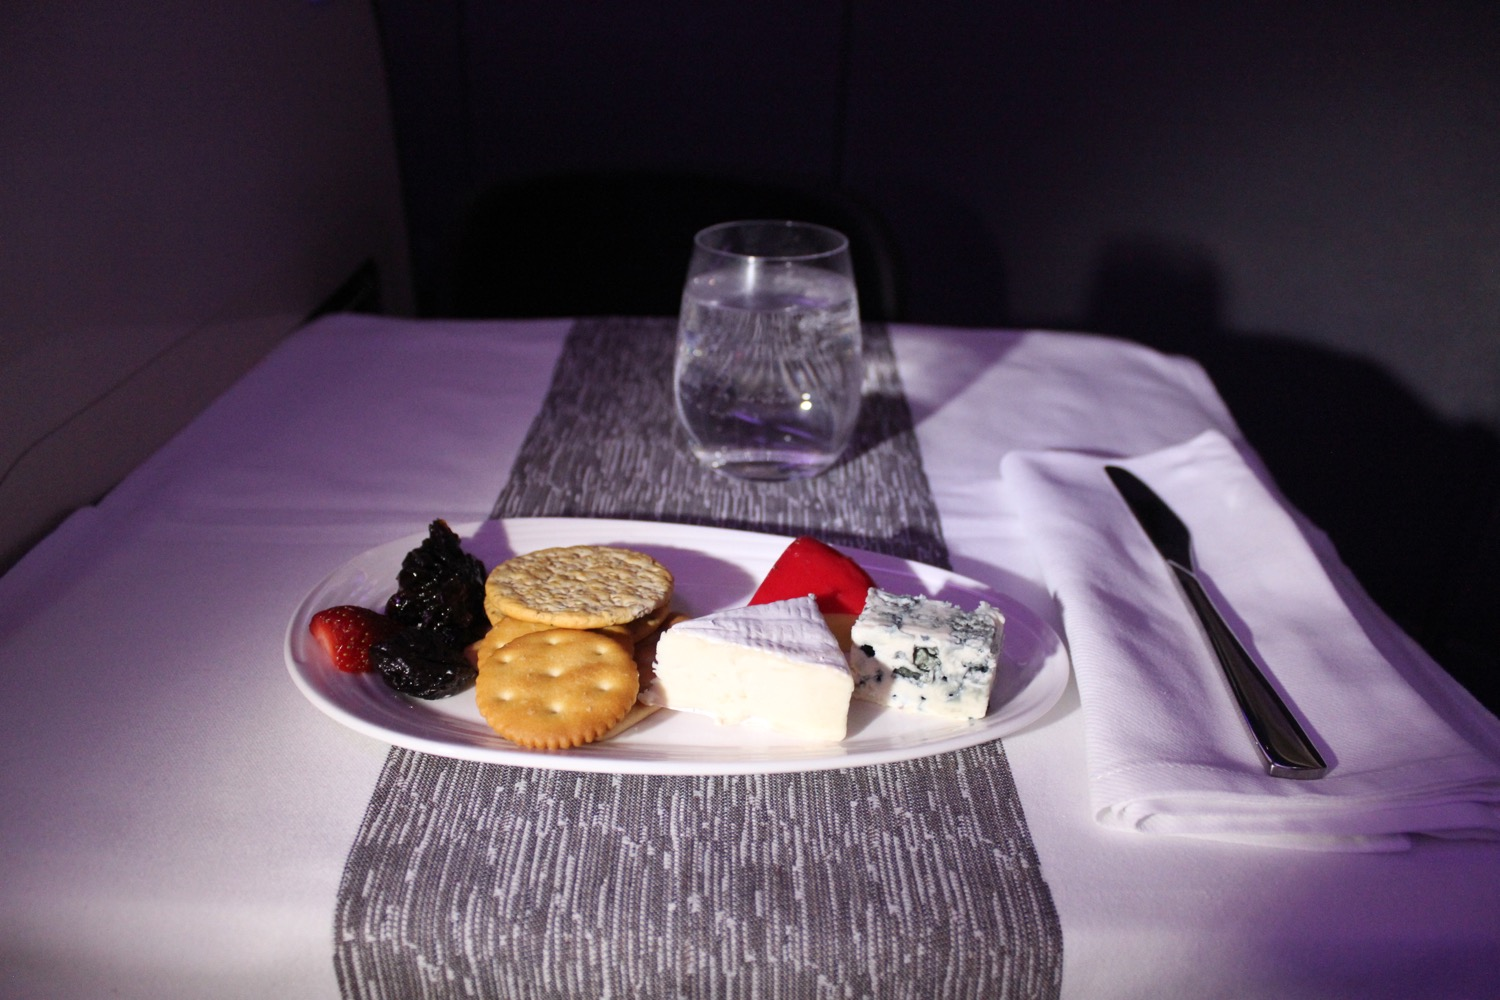 Virgin Atlantic A343 Upper Class Review - 30